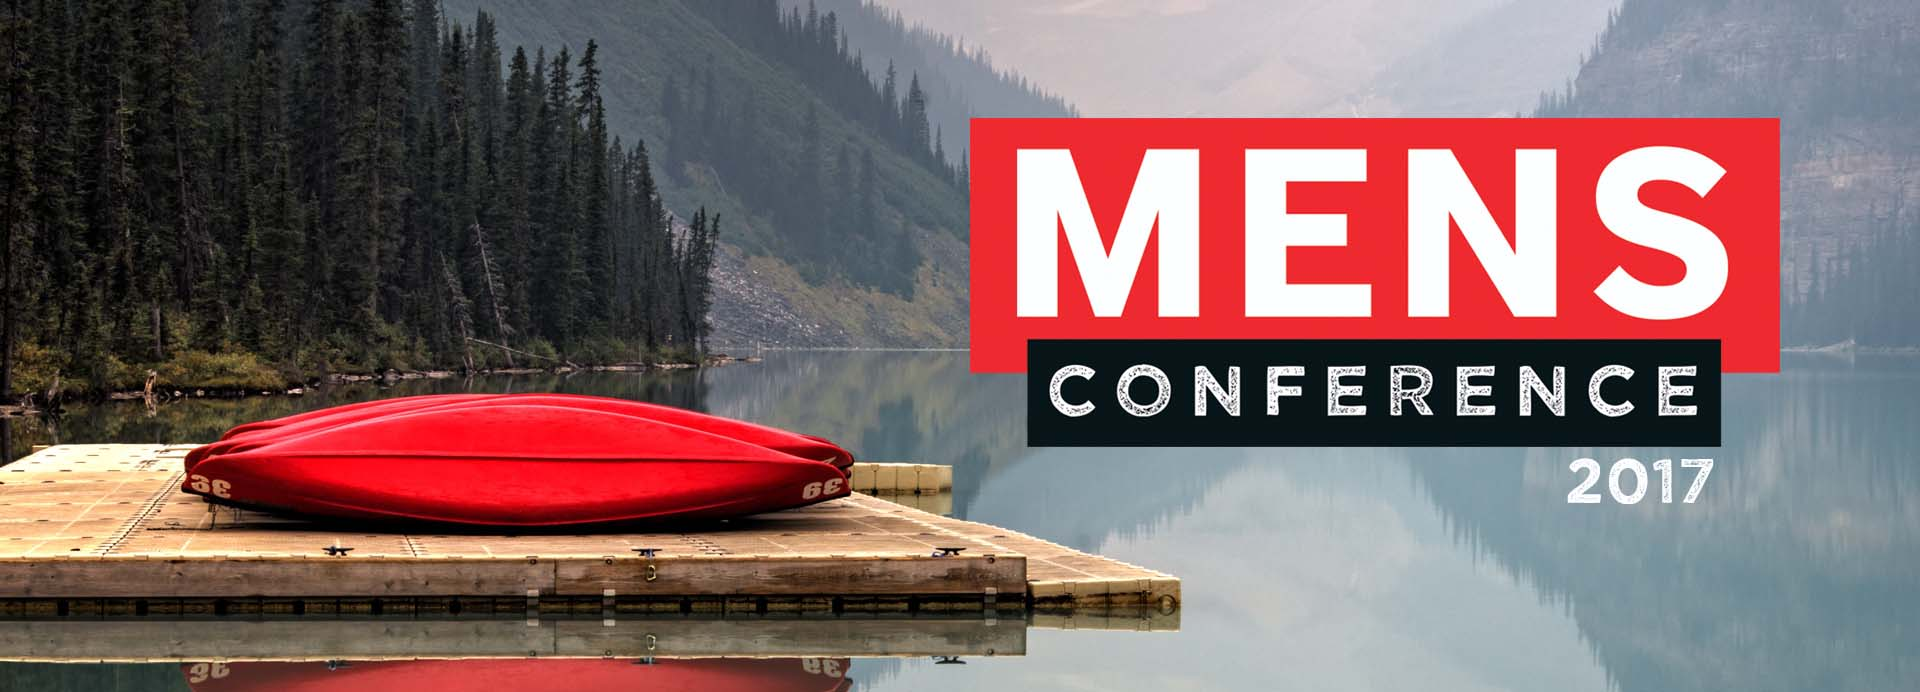 Men's Conference 2017